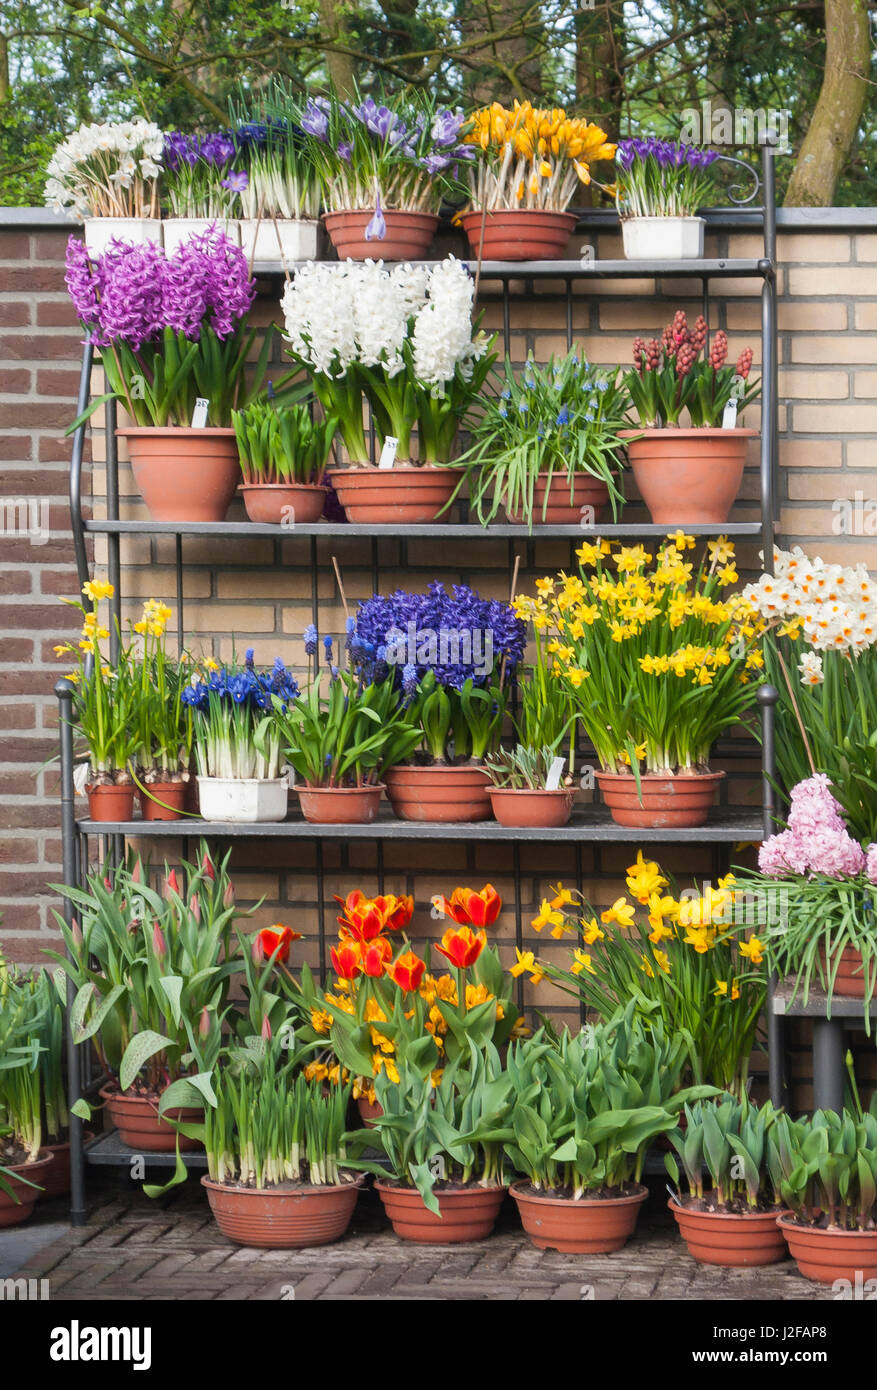 Potted spring flowers on garden bench stock photo 139250000 alamy potted spring flowers on garden bench mightylinksfo